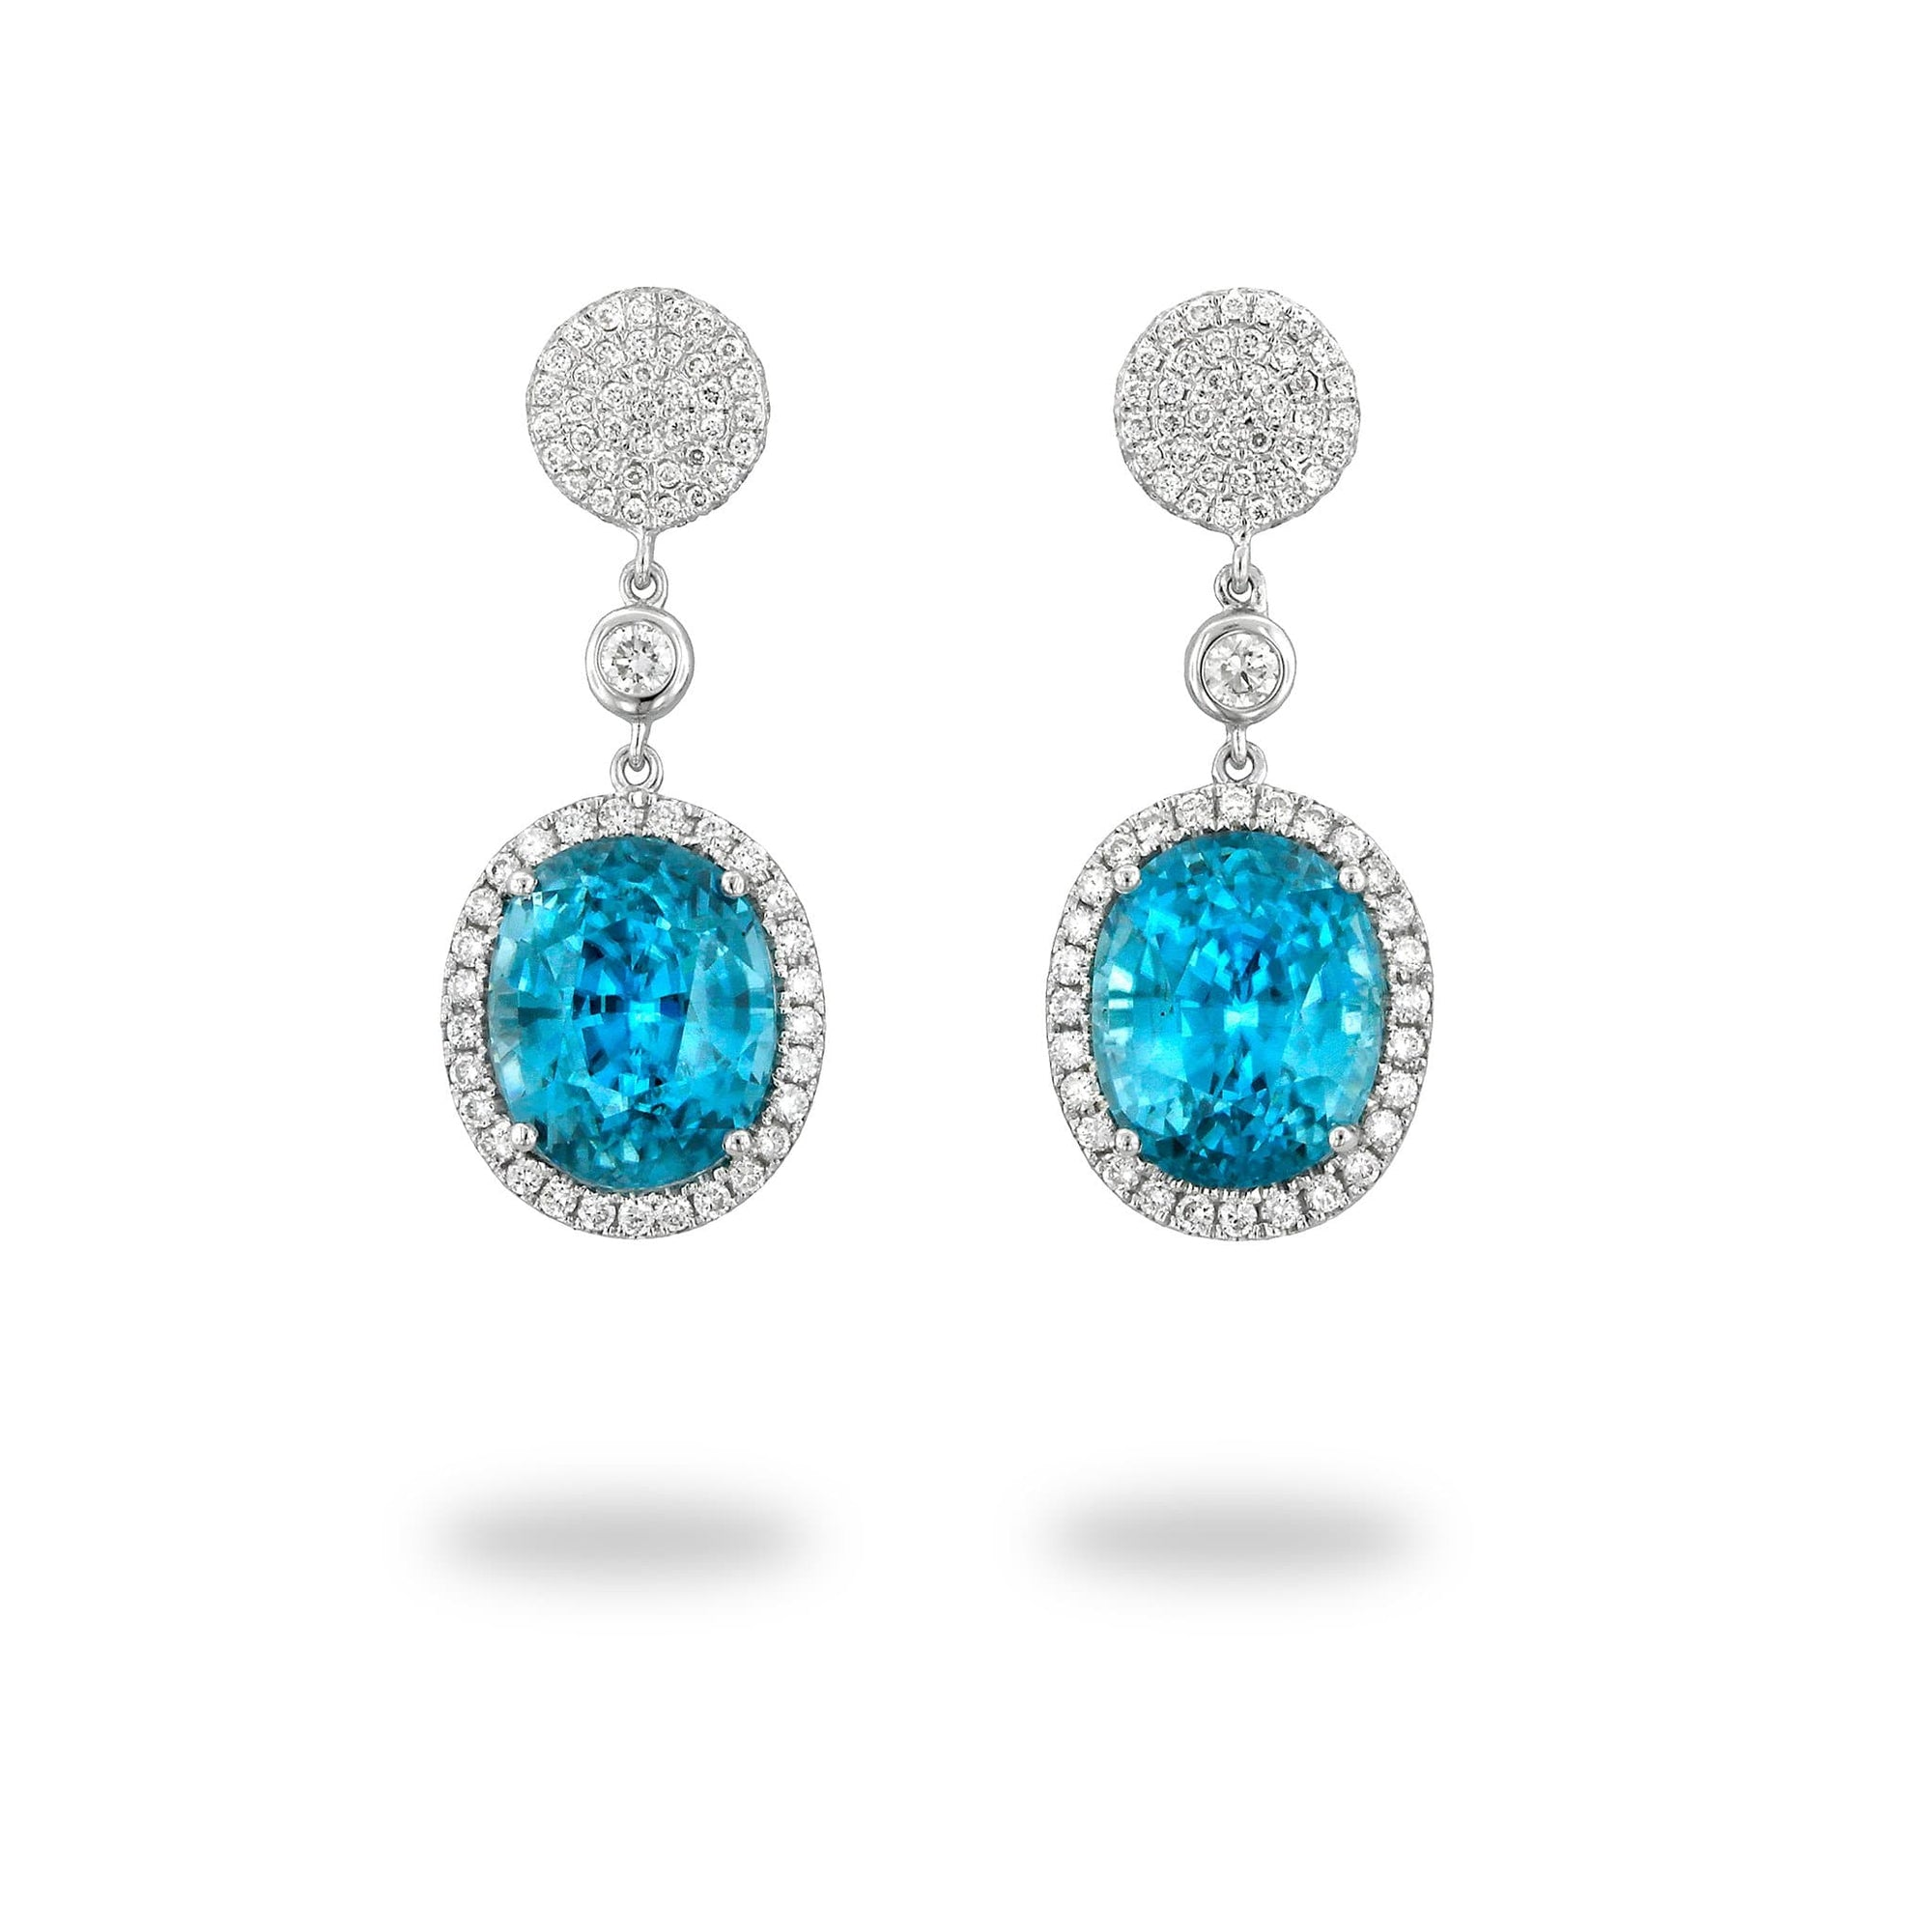 Blue Zircon Earrings with Diamonds in 18K White Gold - Maui Divers Jewelry